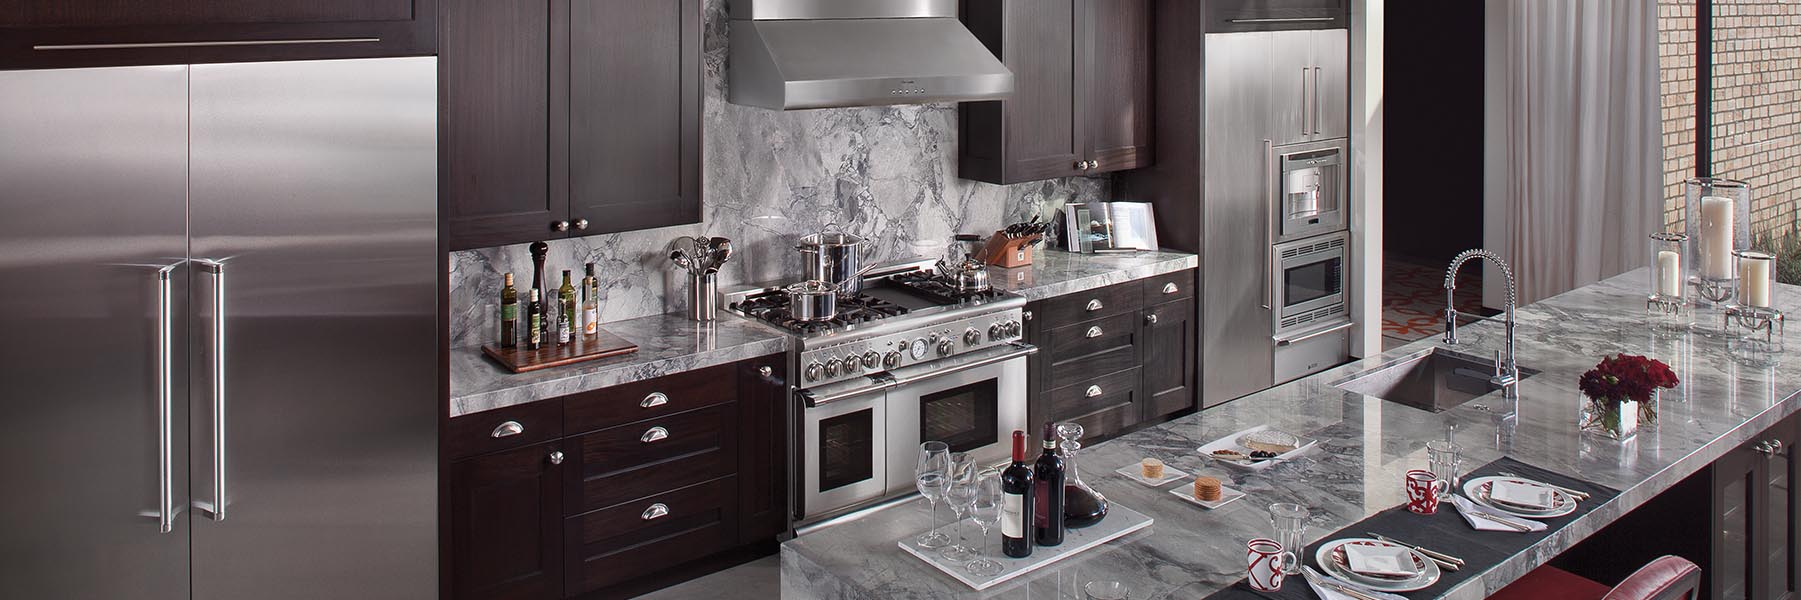 Superbe Thermador Appliances